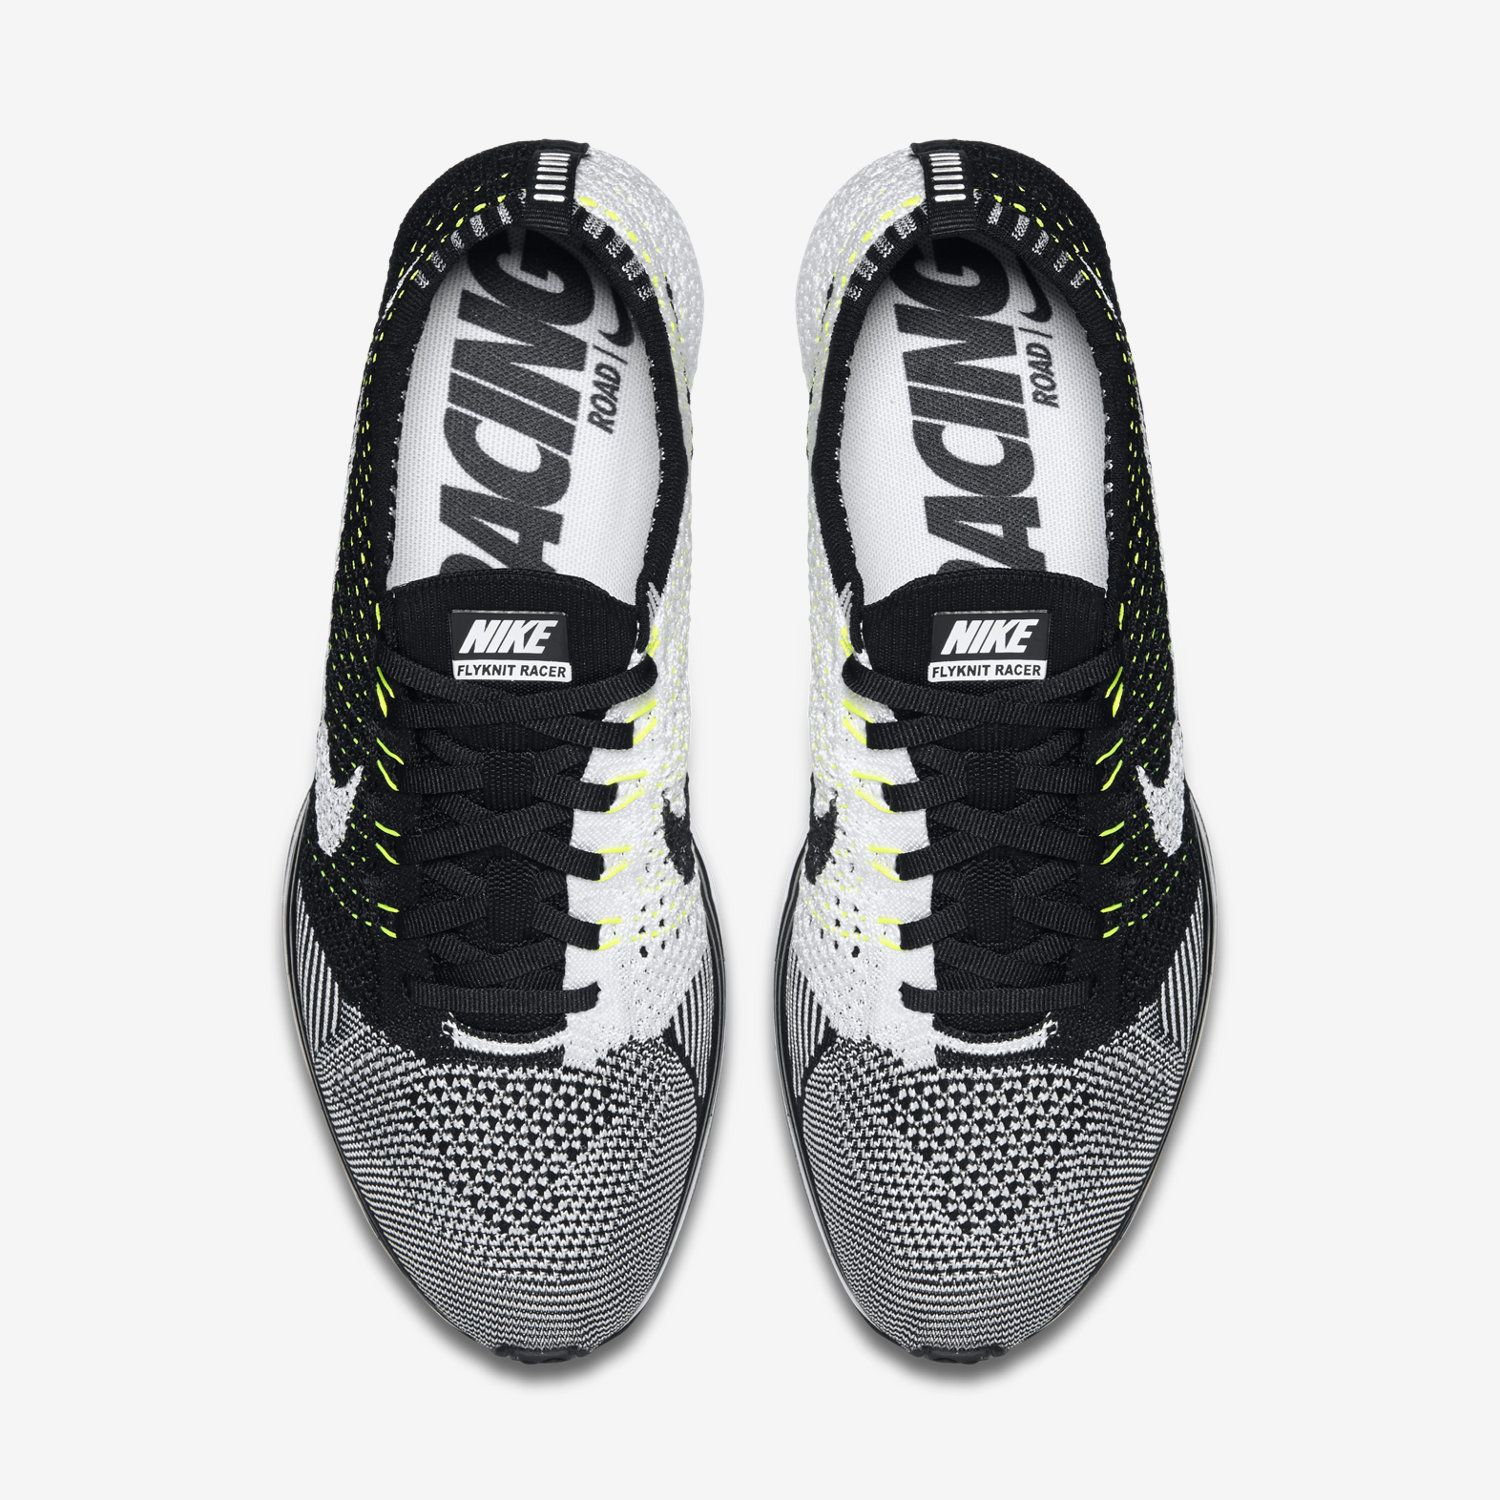 a619799c141351 I found this Nike Flyknit Racer Unisex Running Shoe (Men s Sizing) at Nike  online.